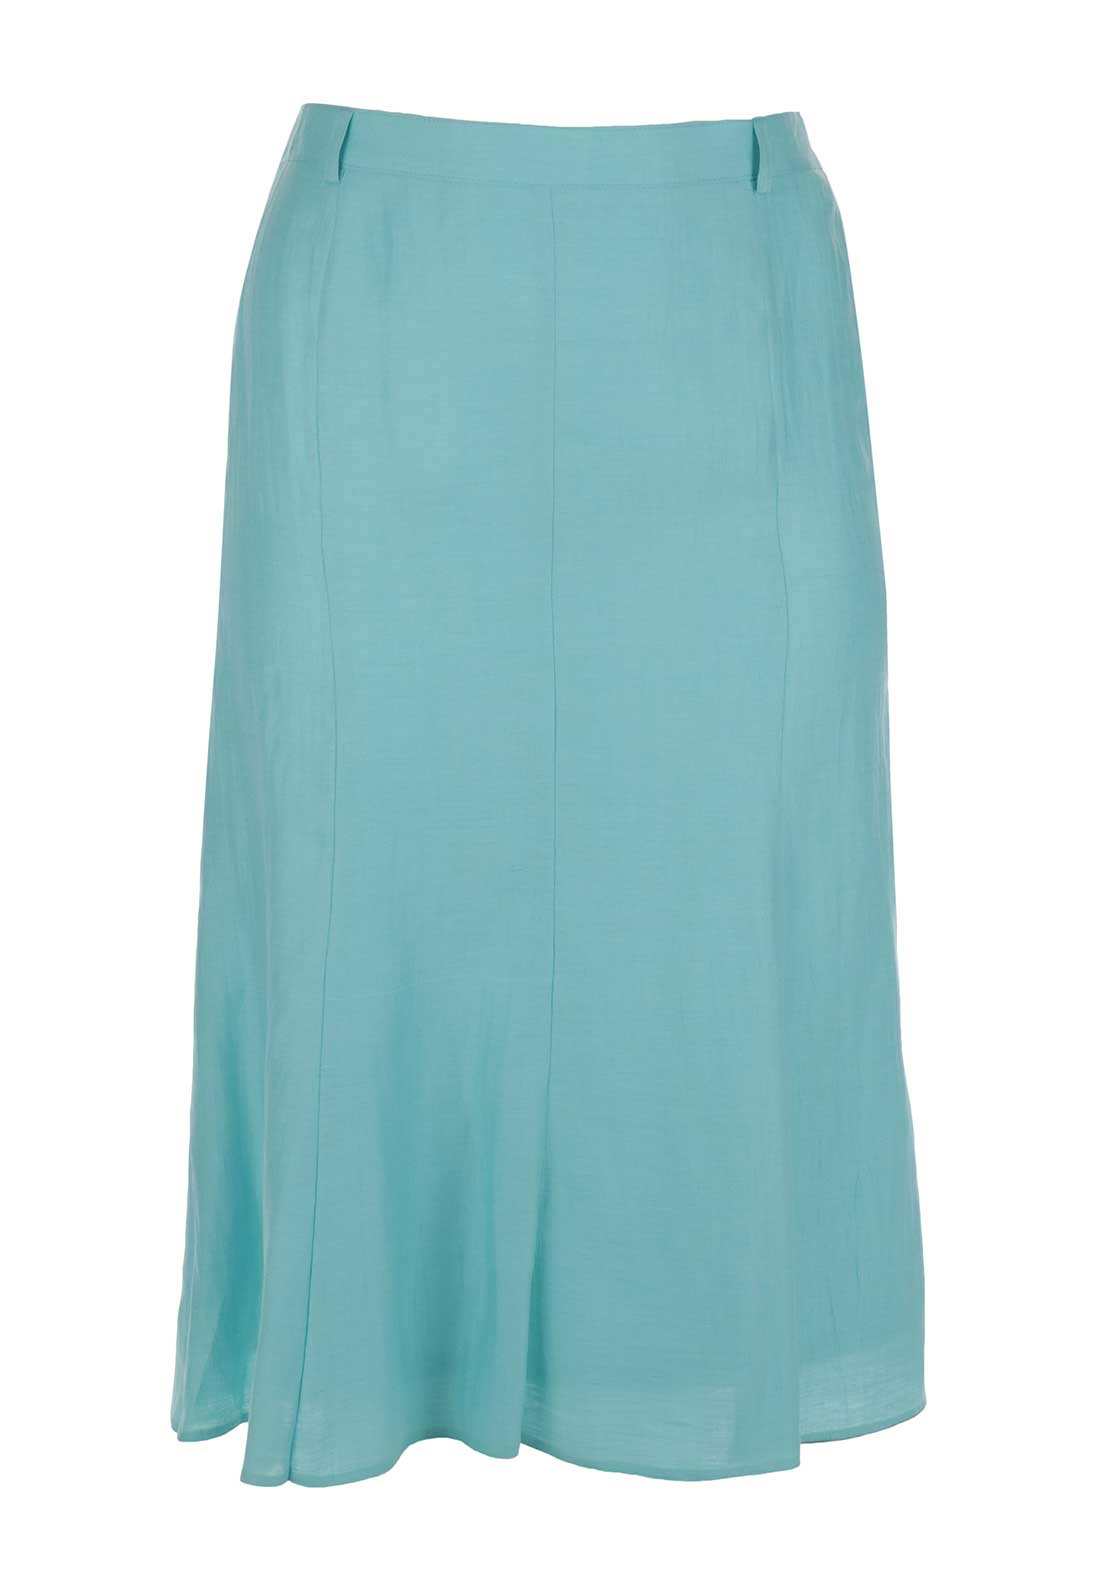 Eugen Klein A-line Skirt, Turquoise